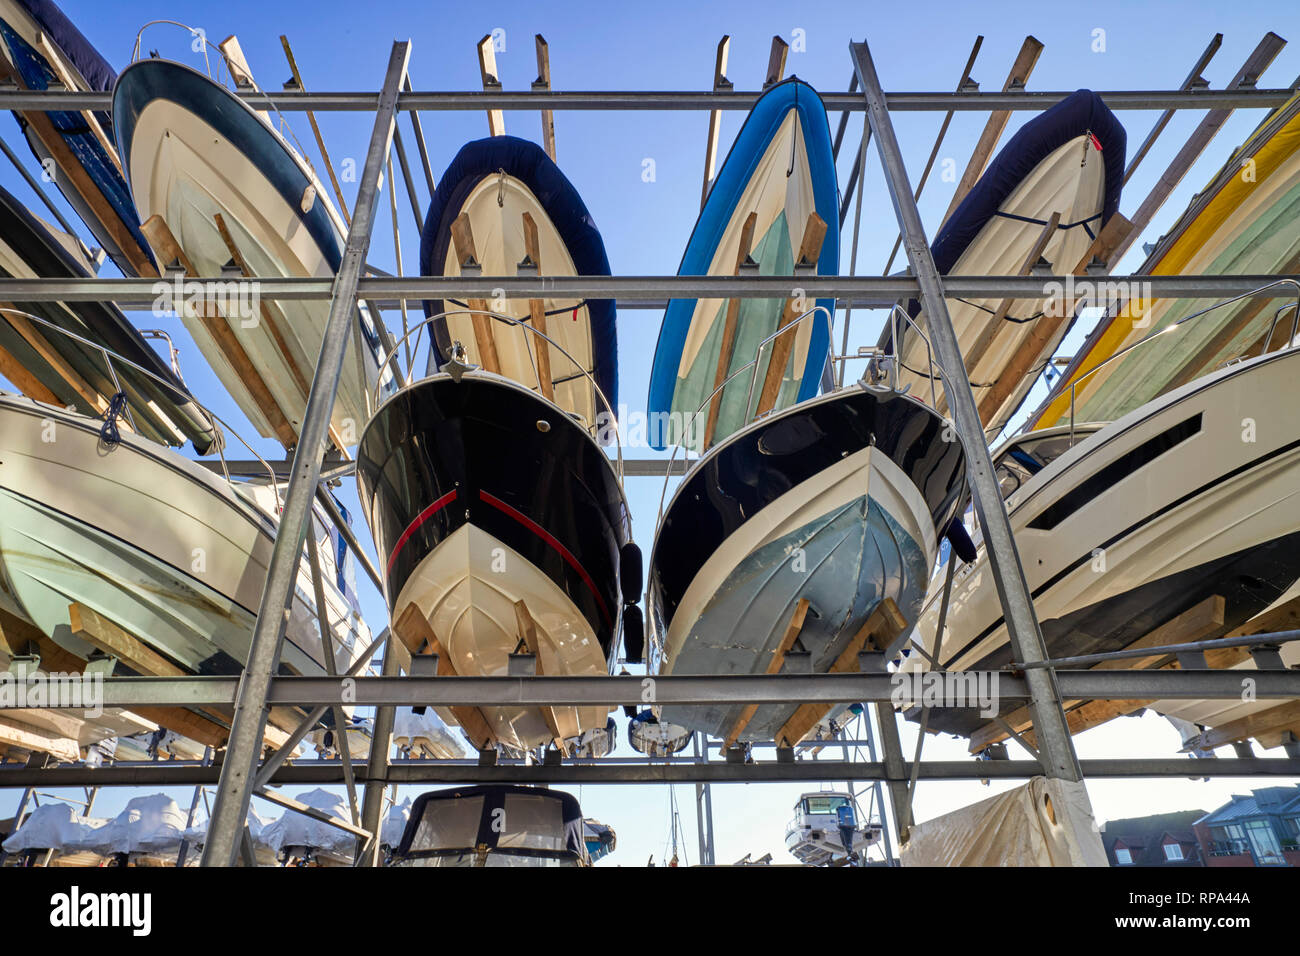 Pleasure boats parked on a vertical rack system at Camber Dock in Portsmouth - Stock Image